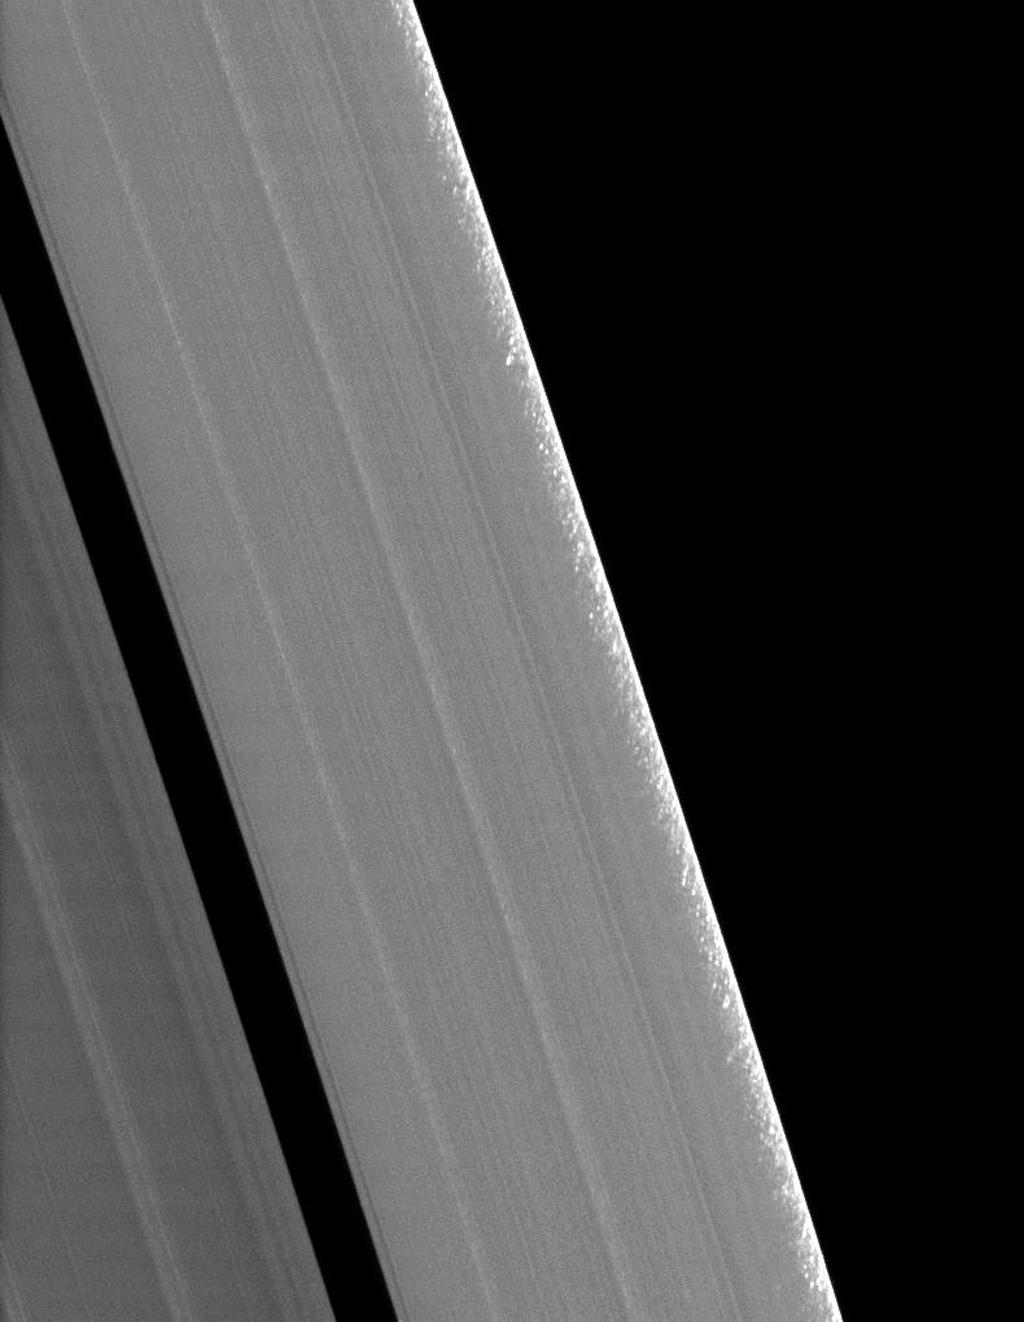 Clumps of ring material are revealed along the edge of Saturn's A ring in this image taken during the planet's August 2009 equinox. The granular appearance of the outer edge of the A ring is likely created by gravitational clumping of particles there.